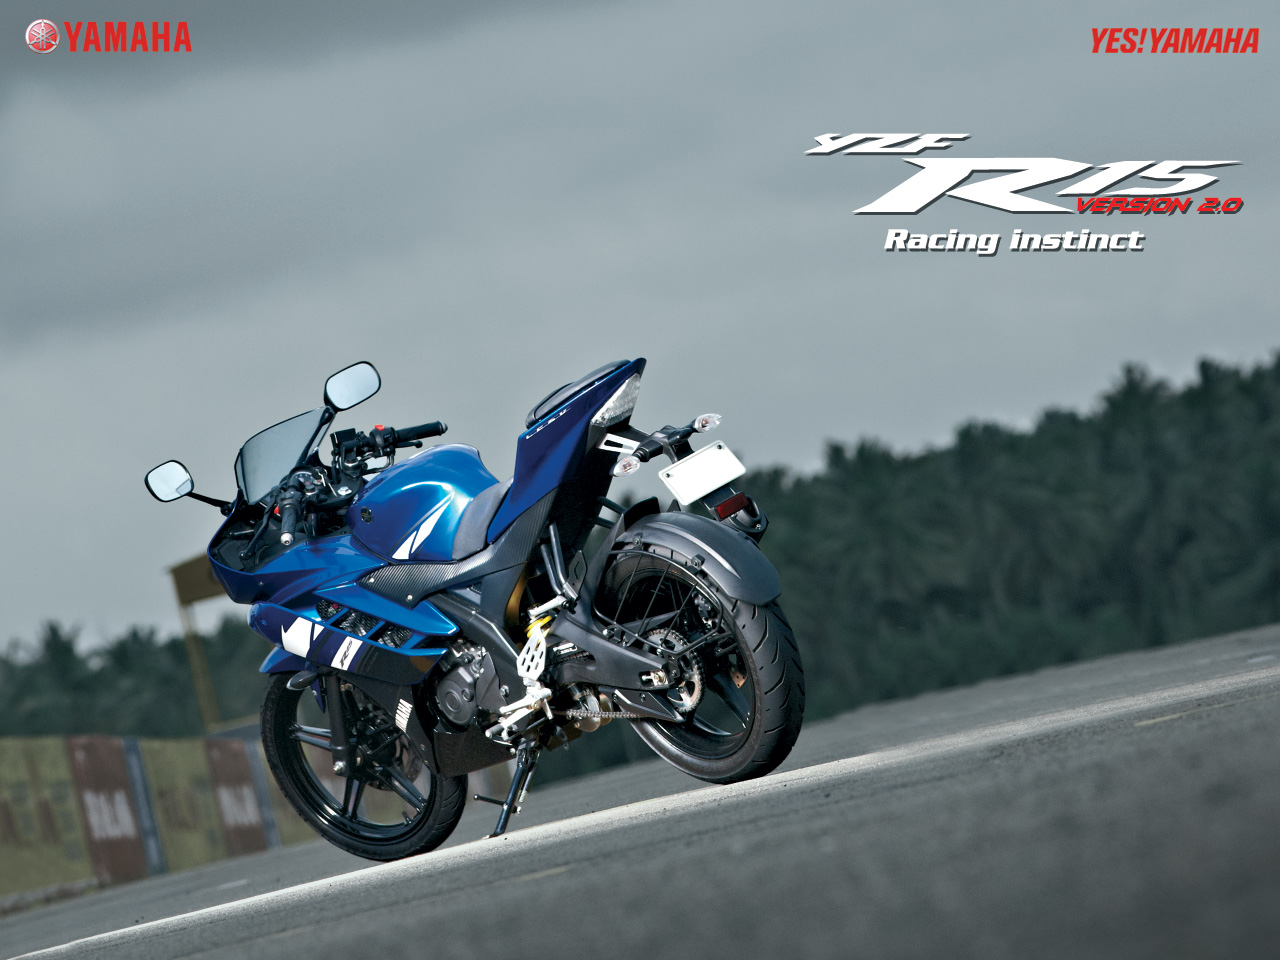 Yamaha fazer white blue images amp pictures becuo - Http 4 Bp Blogspot Com Hdcl9bk8nby Tmzehziayti